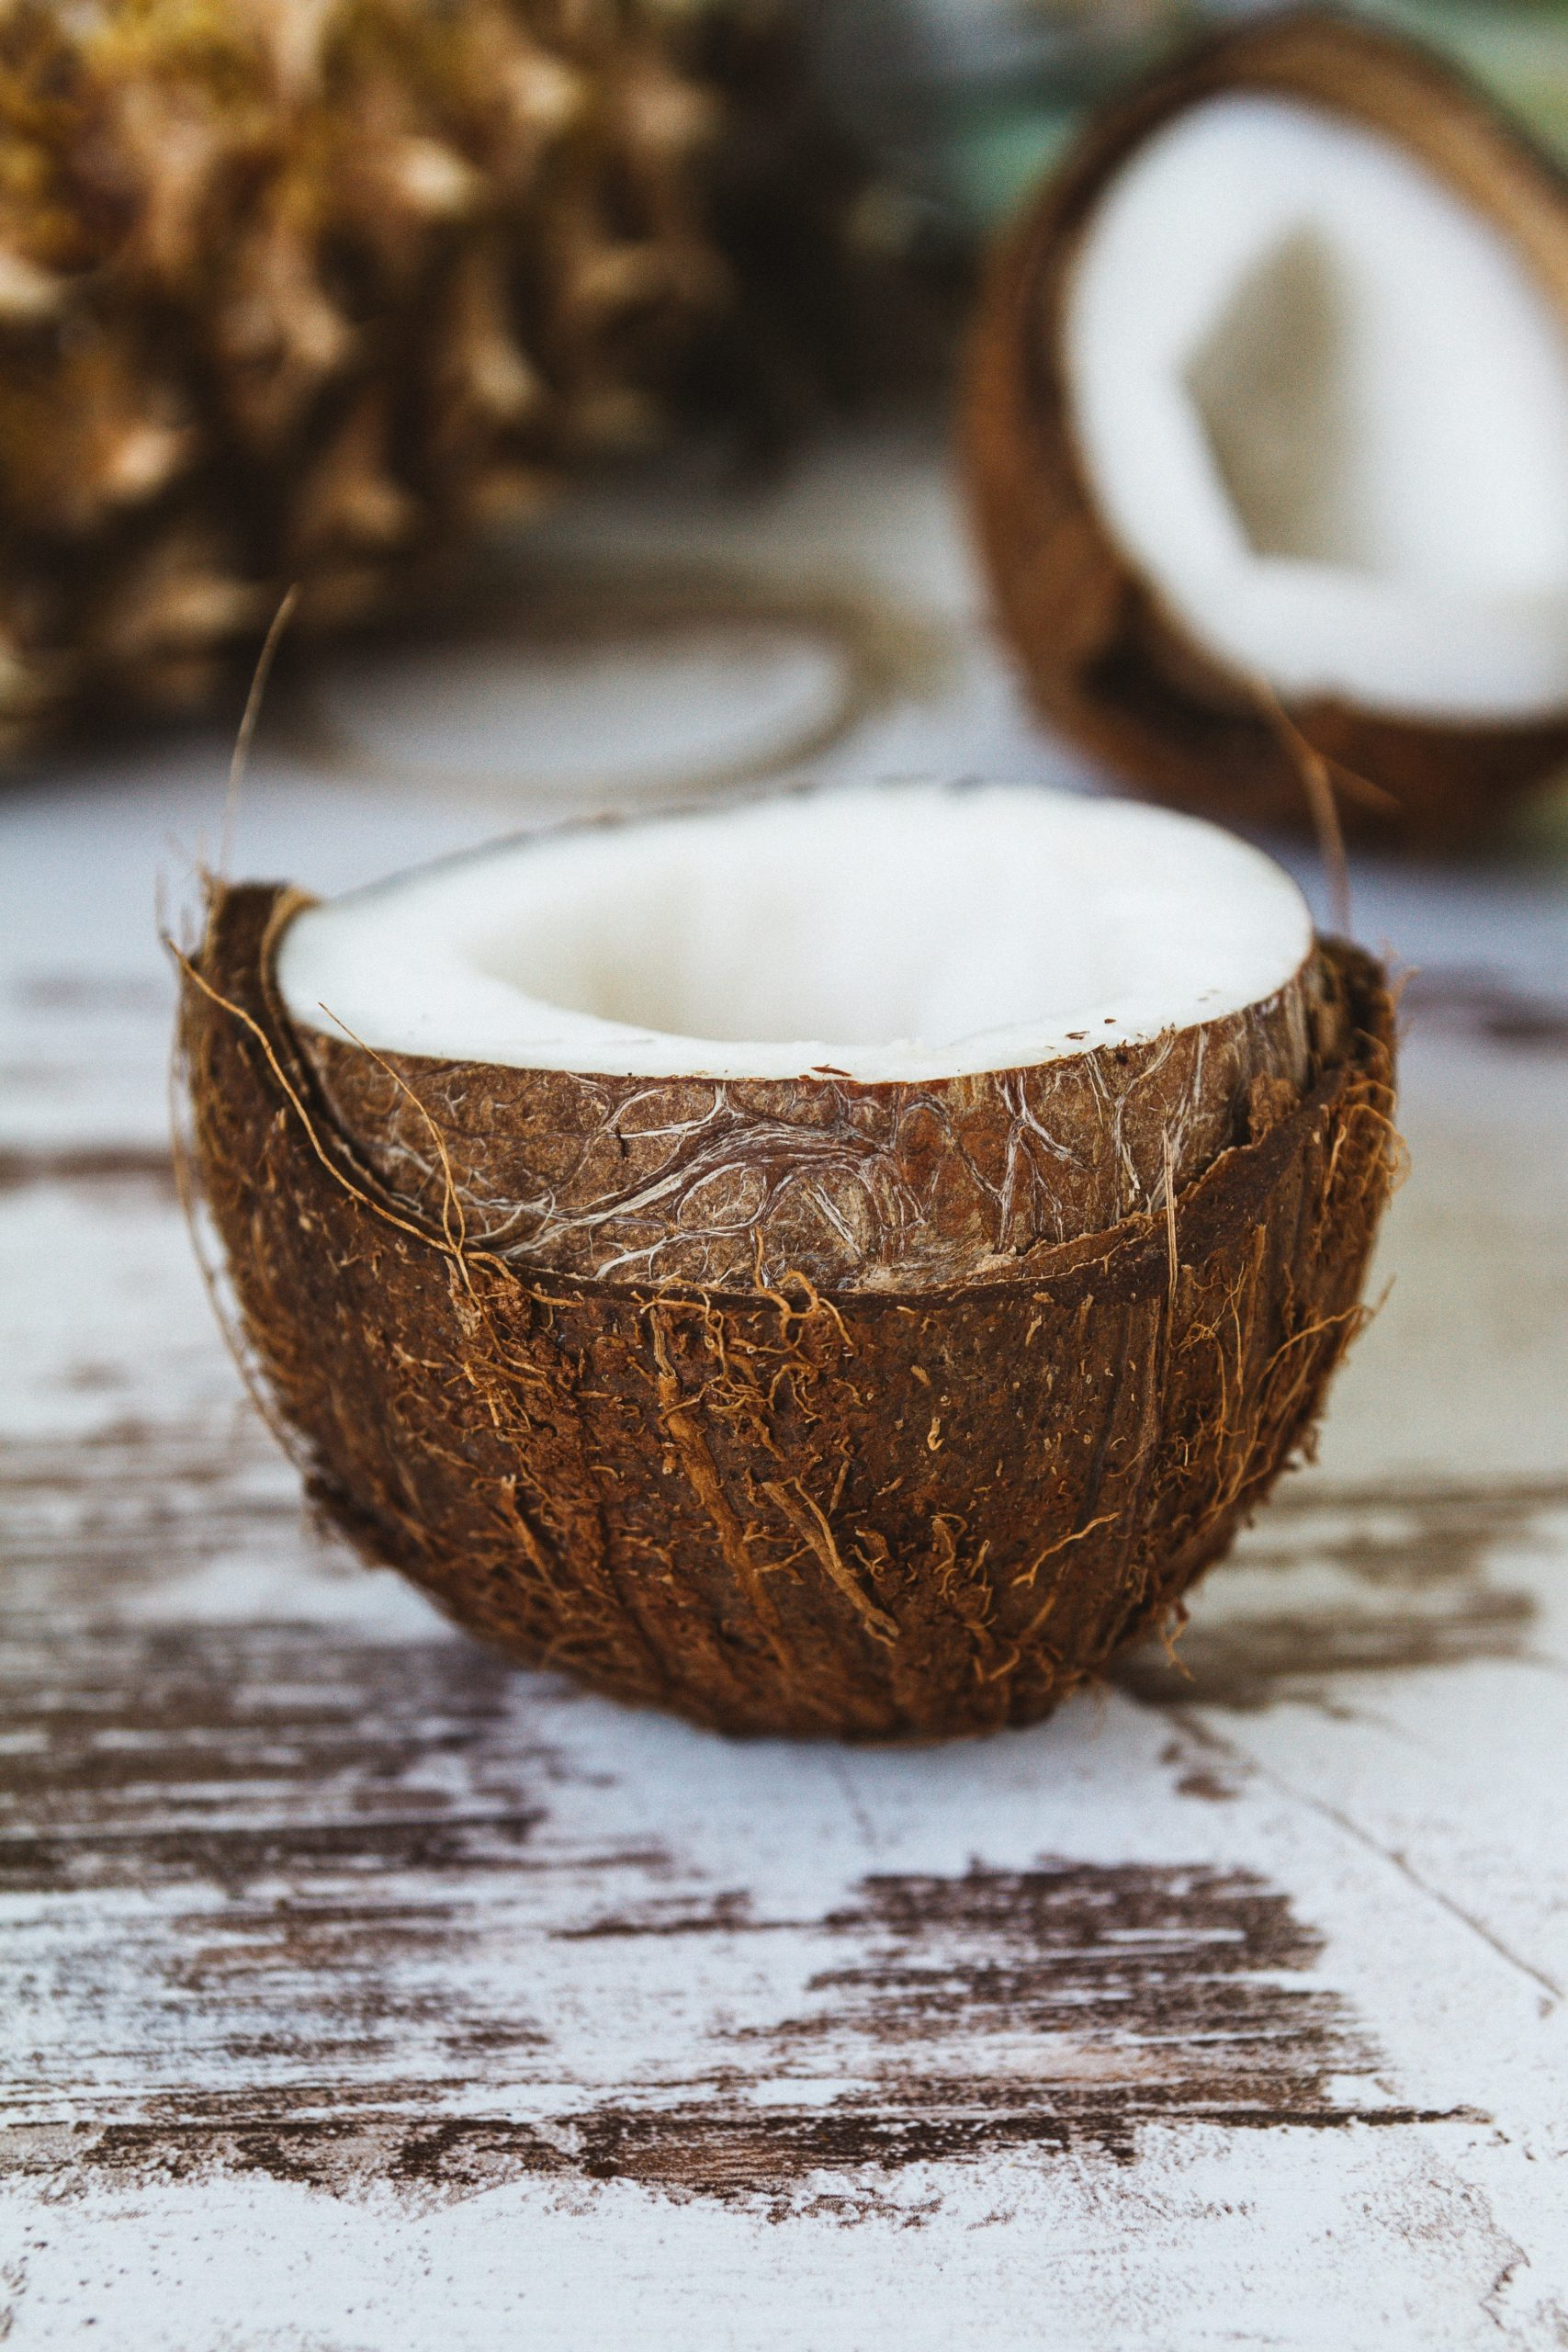 Some Amazing and Unexplored Benefits of the Coconut Oil